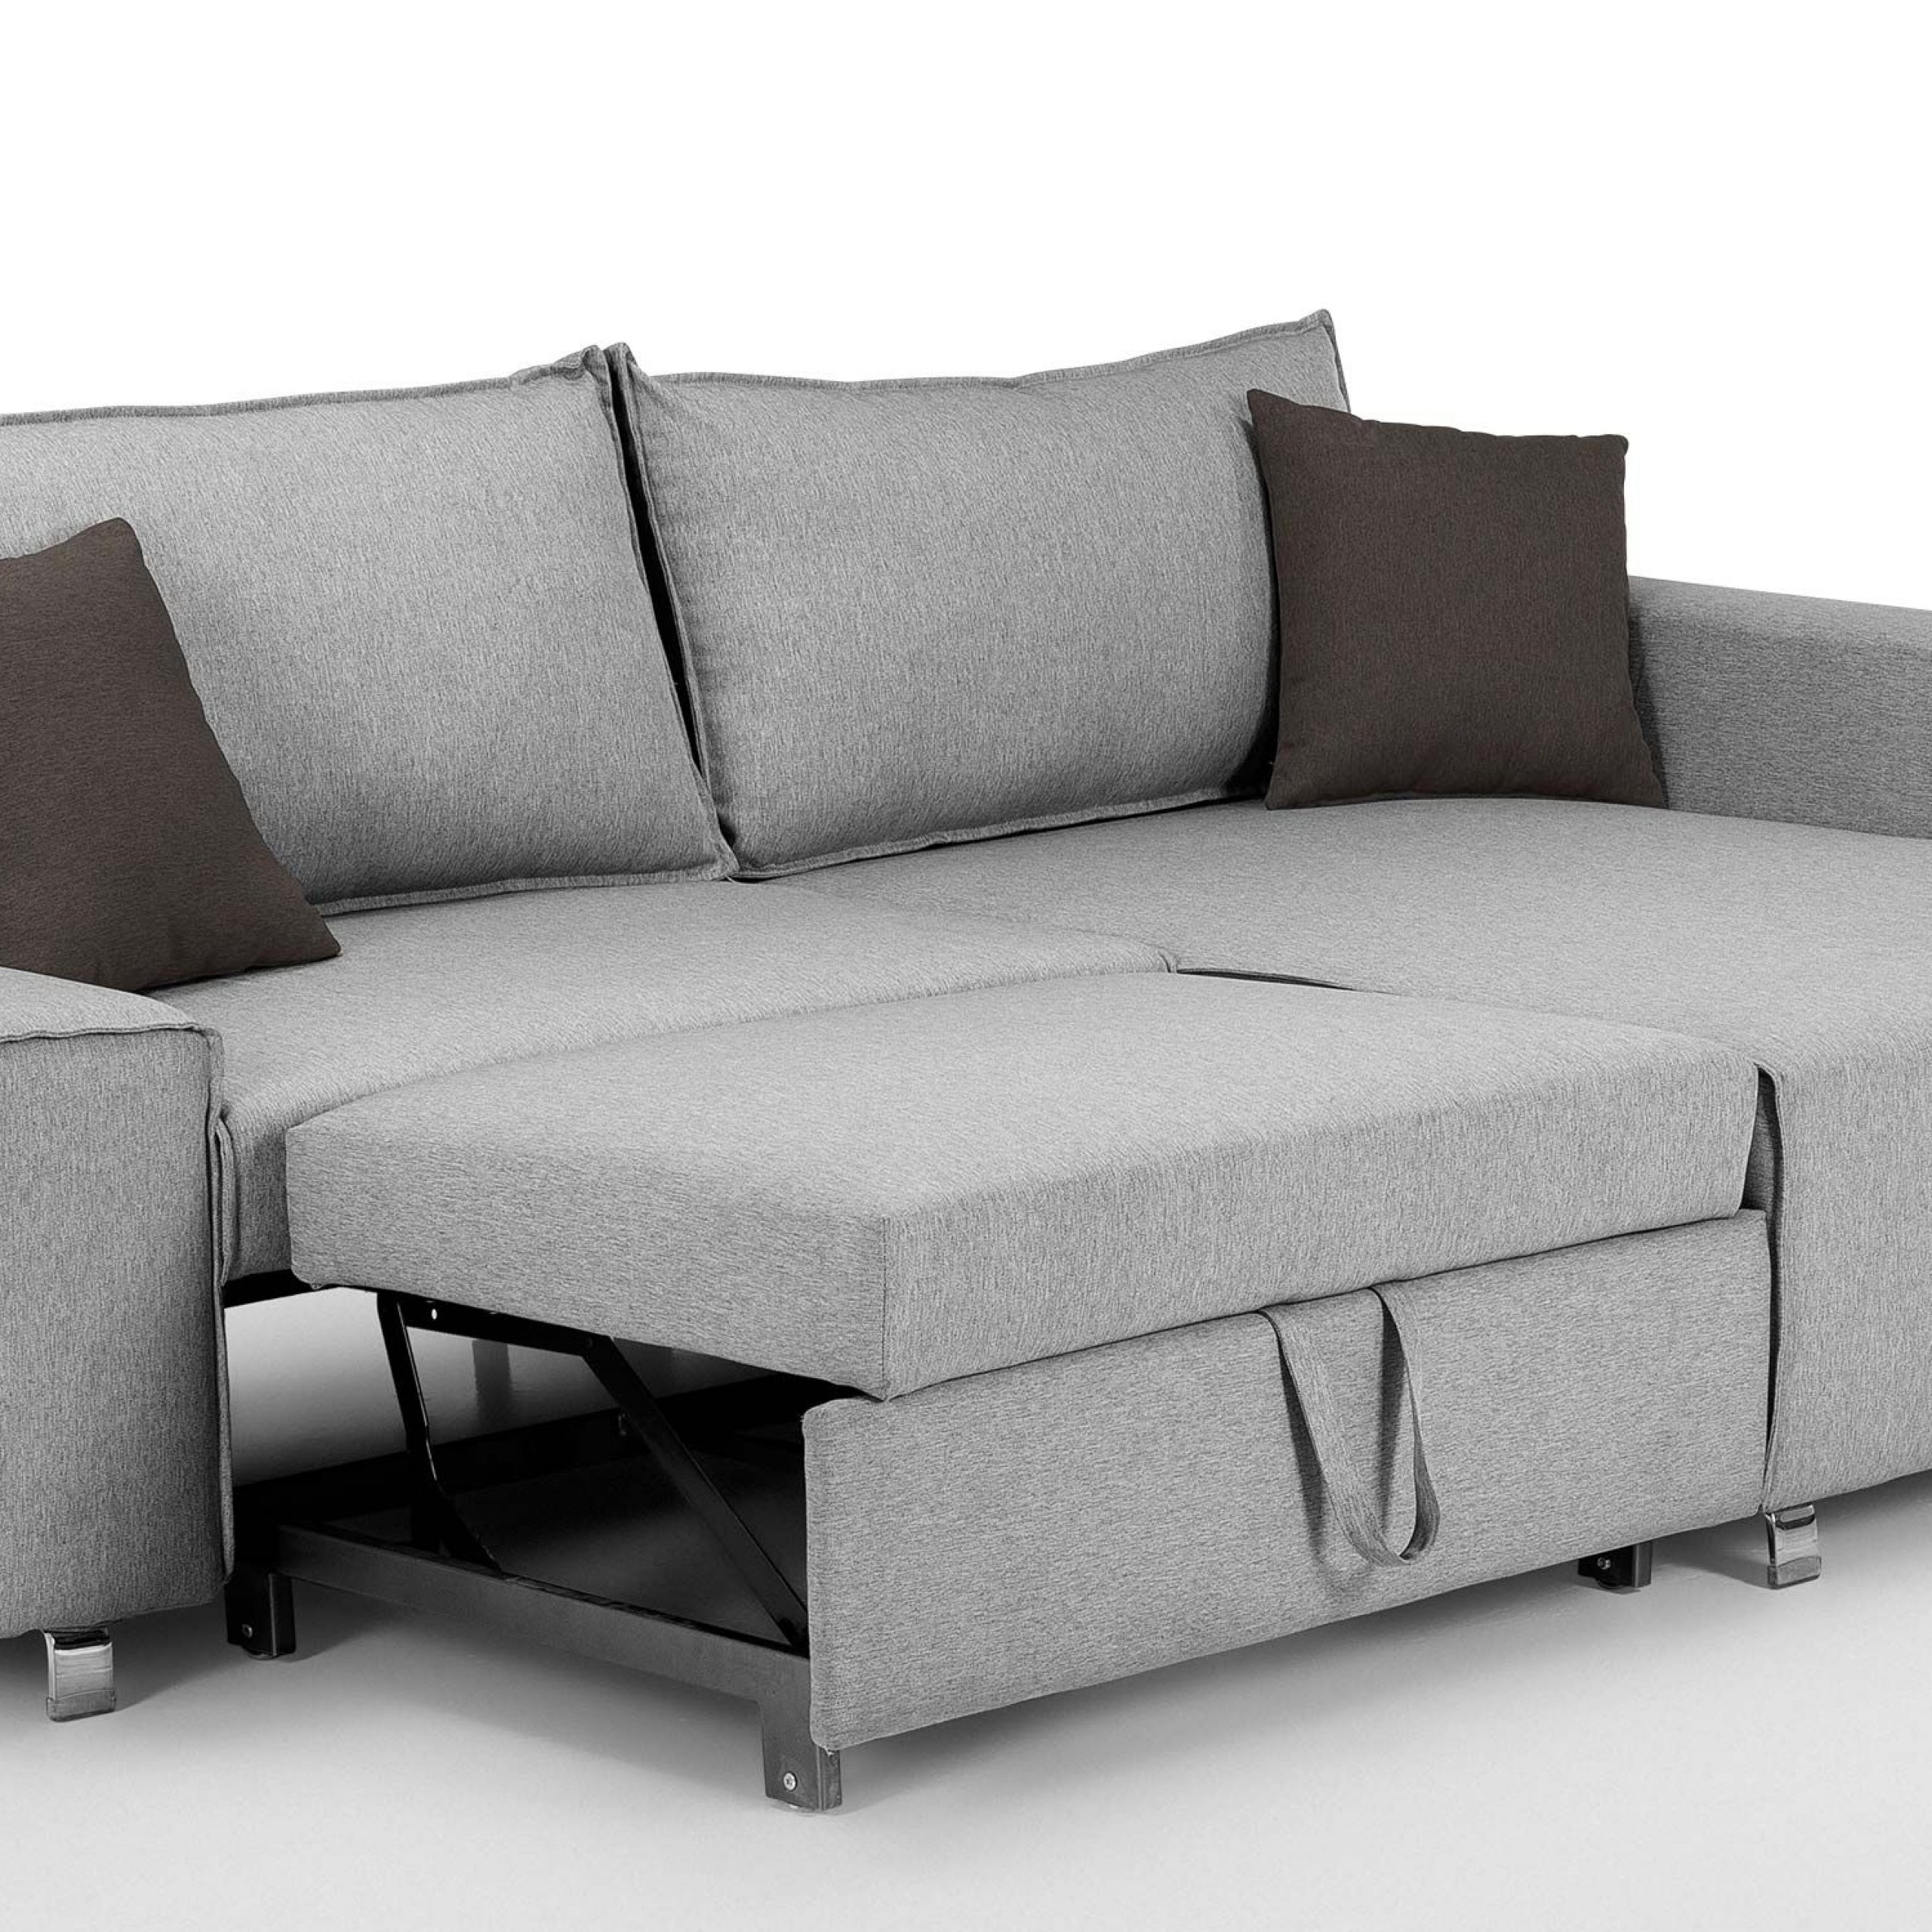 Mayne Right Hand Facing Corner Sofa Bed, Clear Grey Stone Regarding Dulce Right Sectional Sofas Twill Stone (View 12 of 15)